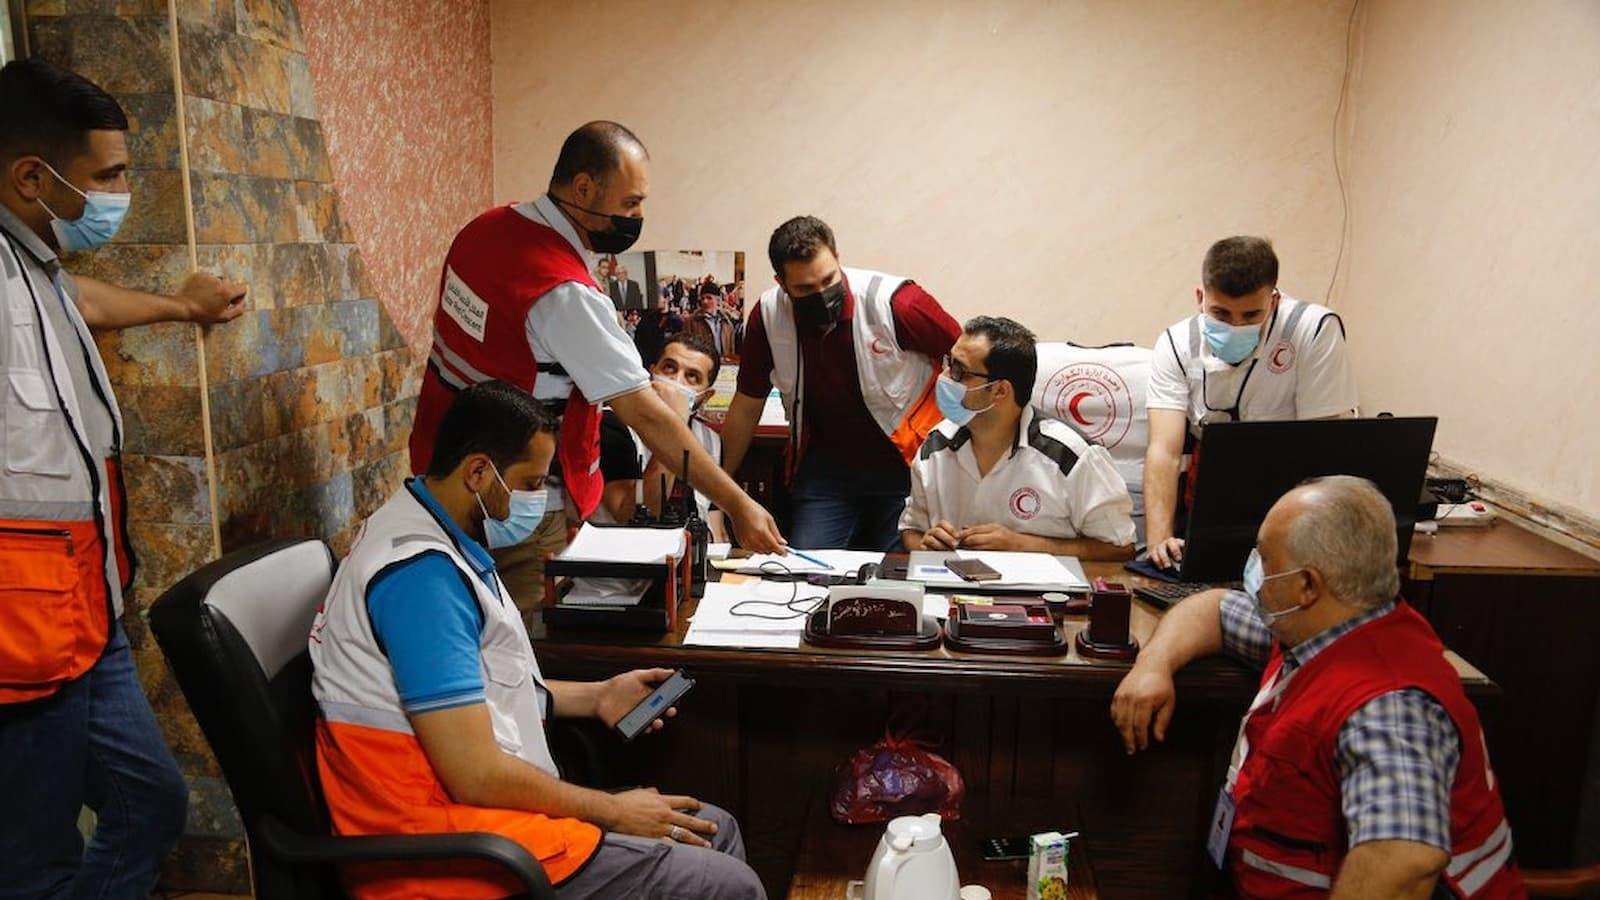 WATCH: QRCS issues QR60 million humanitarian aid appeal for Palestine